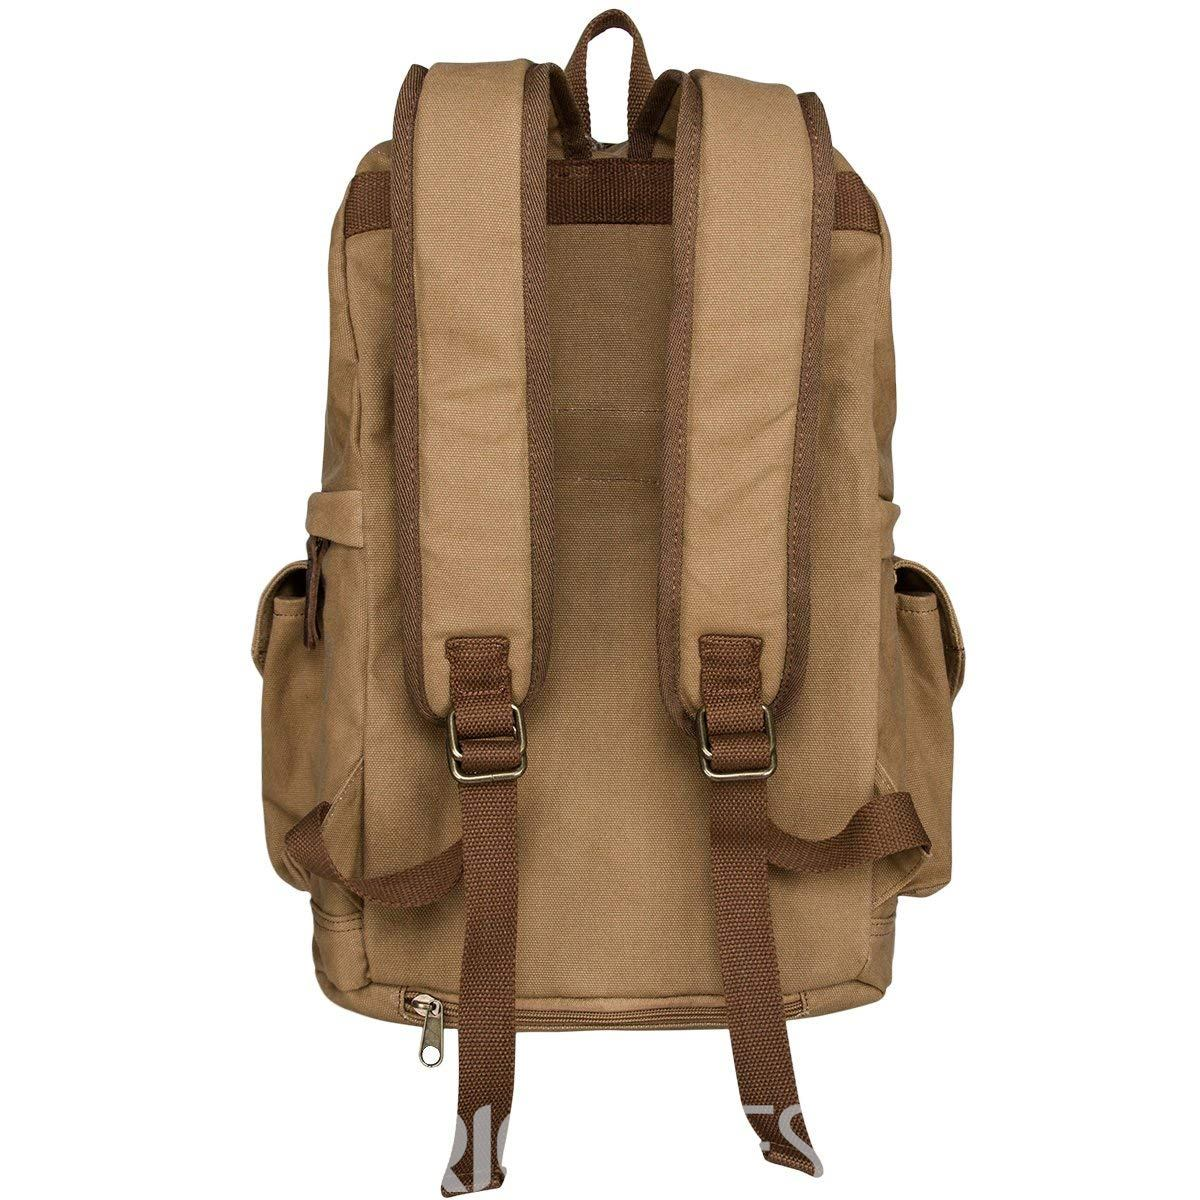 Ericdress Plain Canvas SLR Camera Backpack